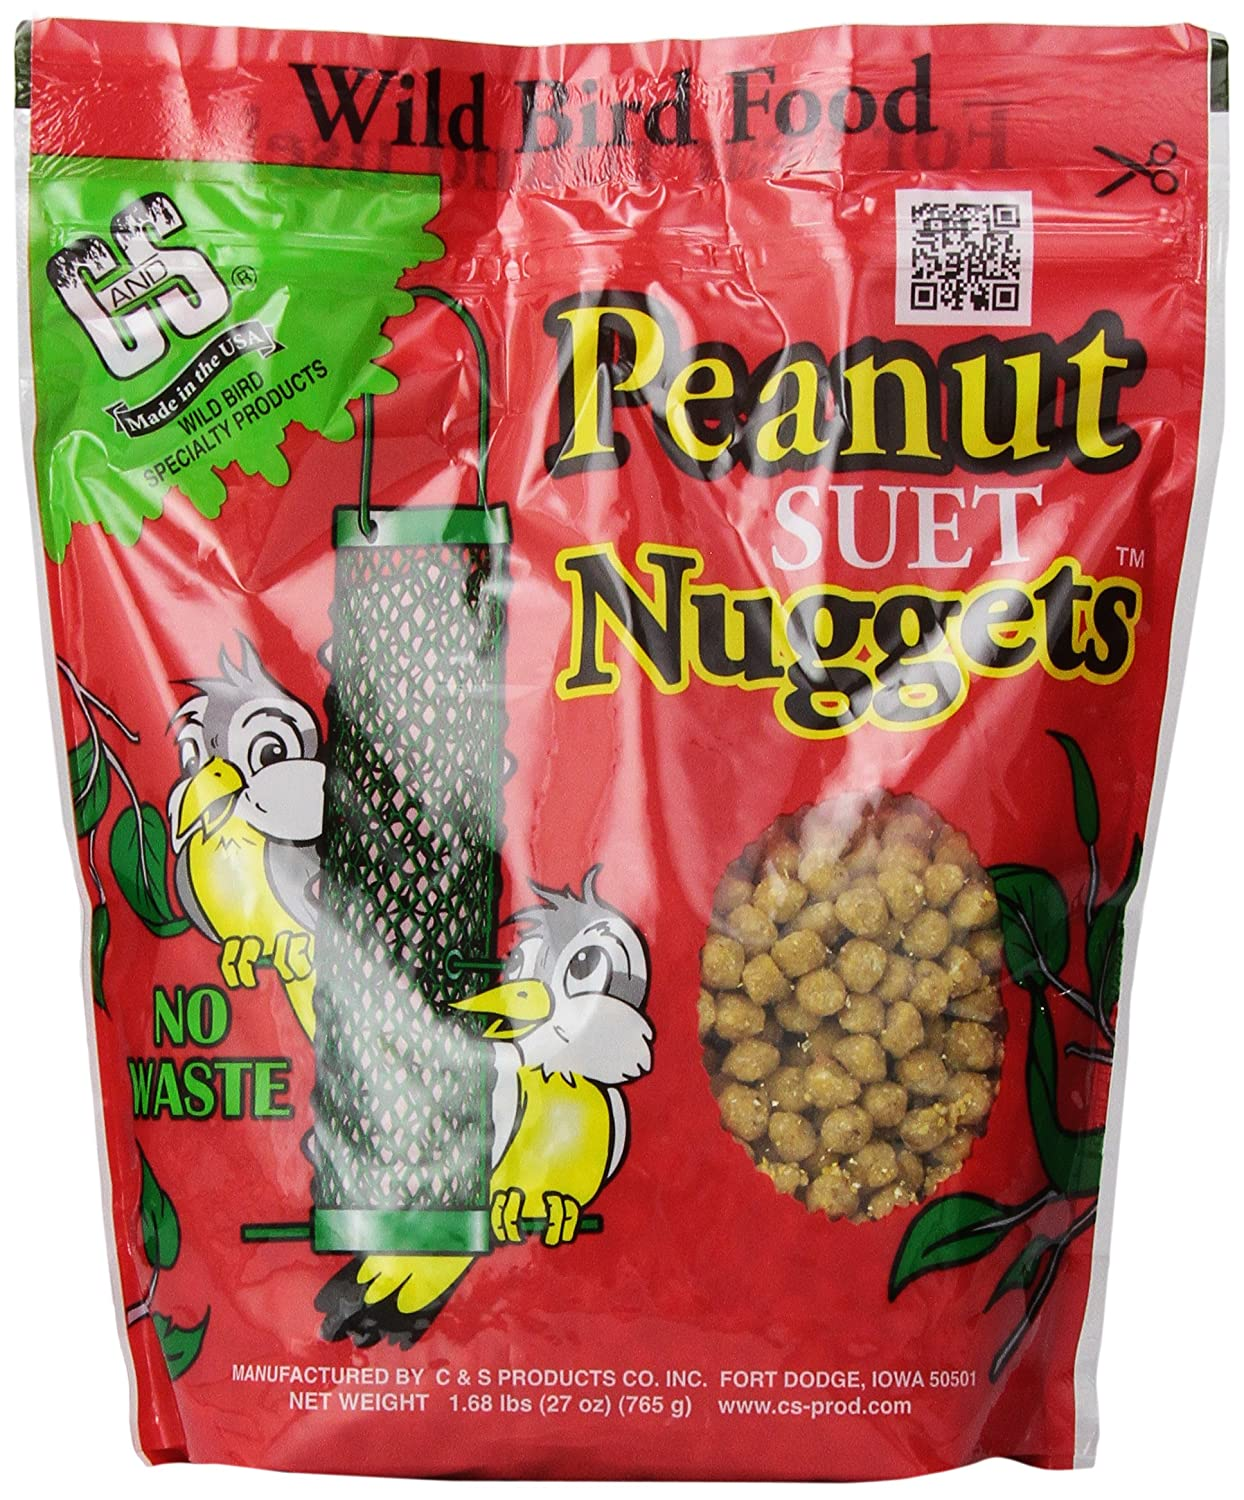 C & S Products Peanut Nuggets, Pack of 6 Bird Products/Food CS06105